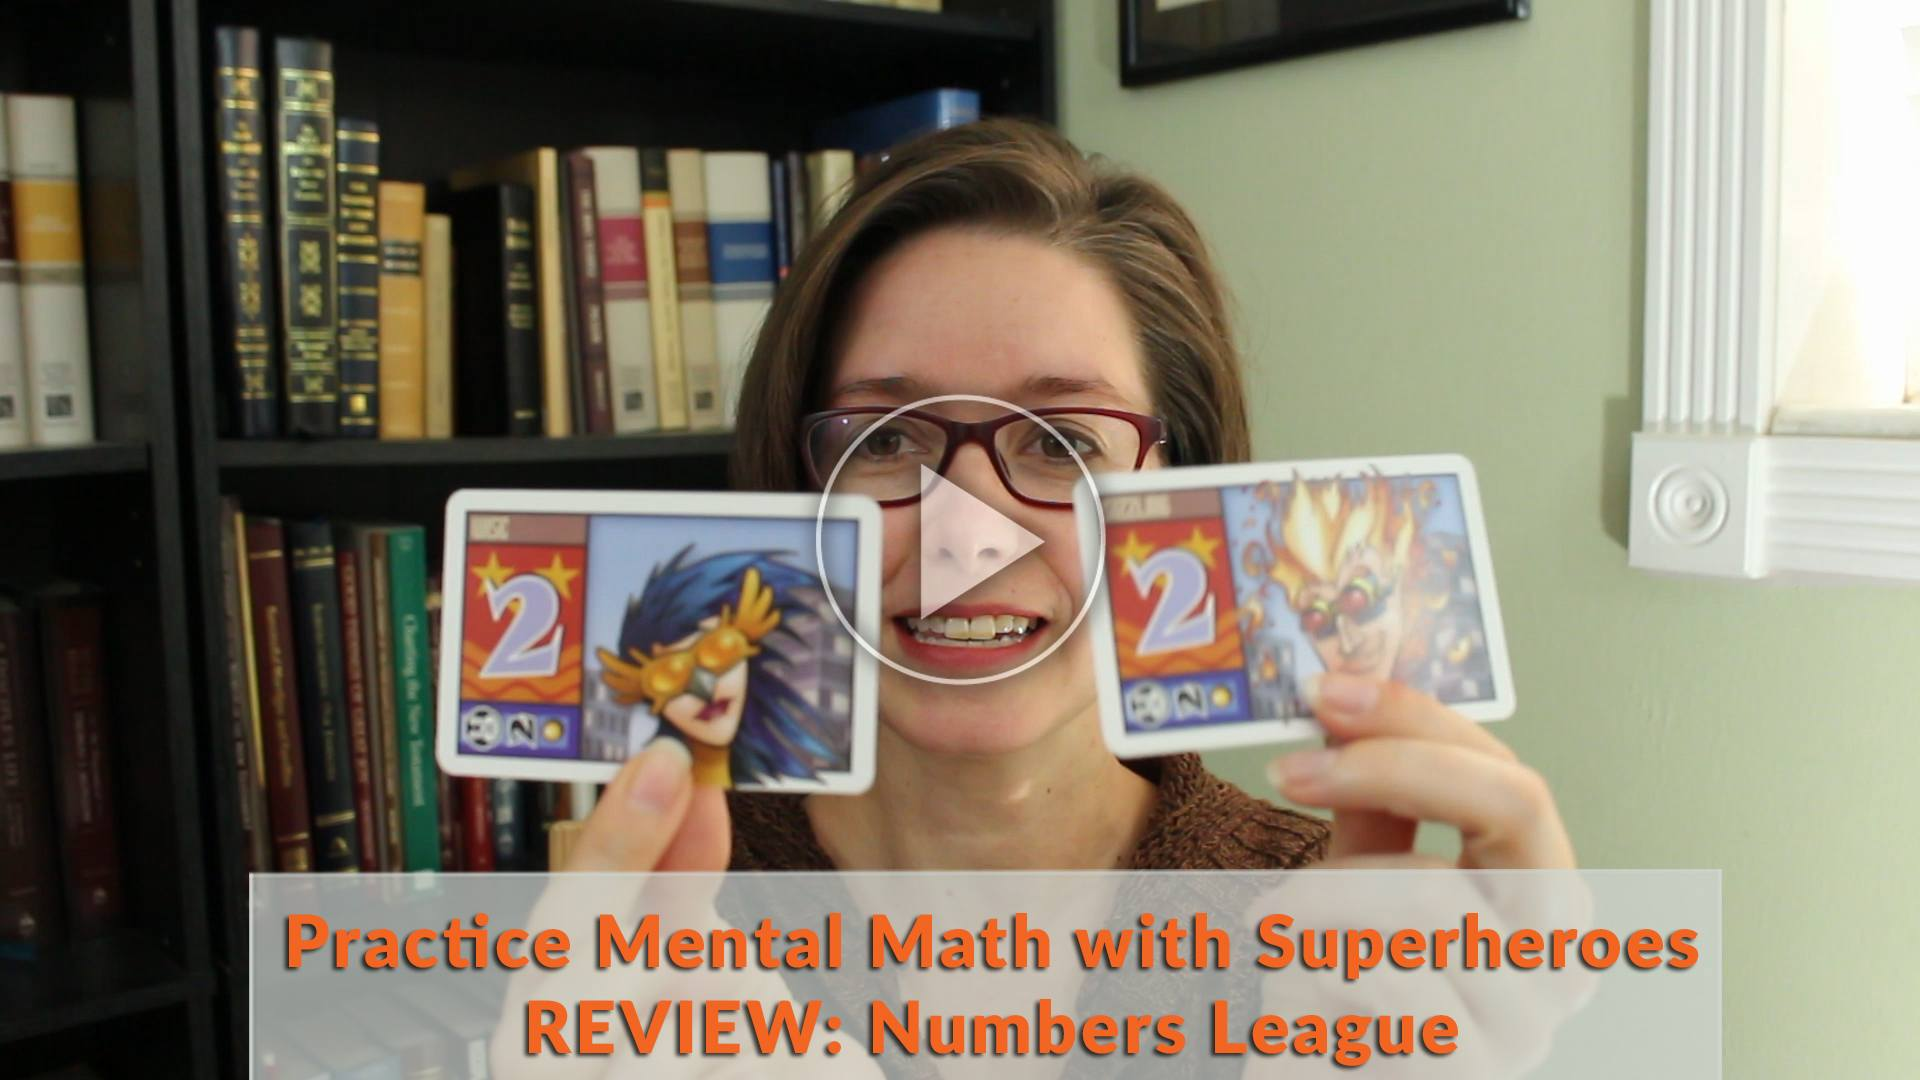 Number league math game review